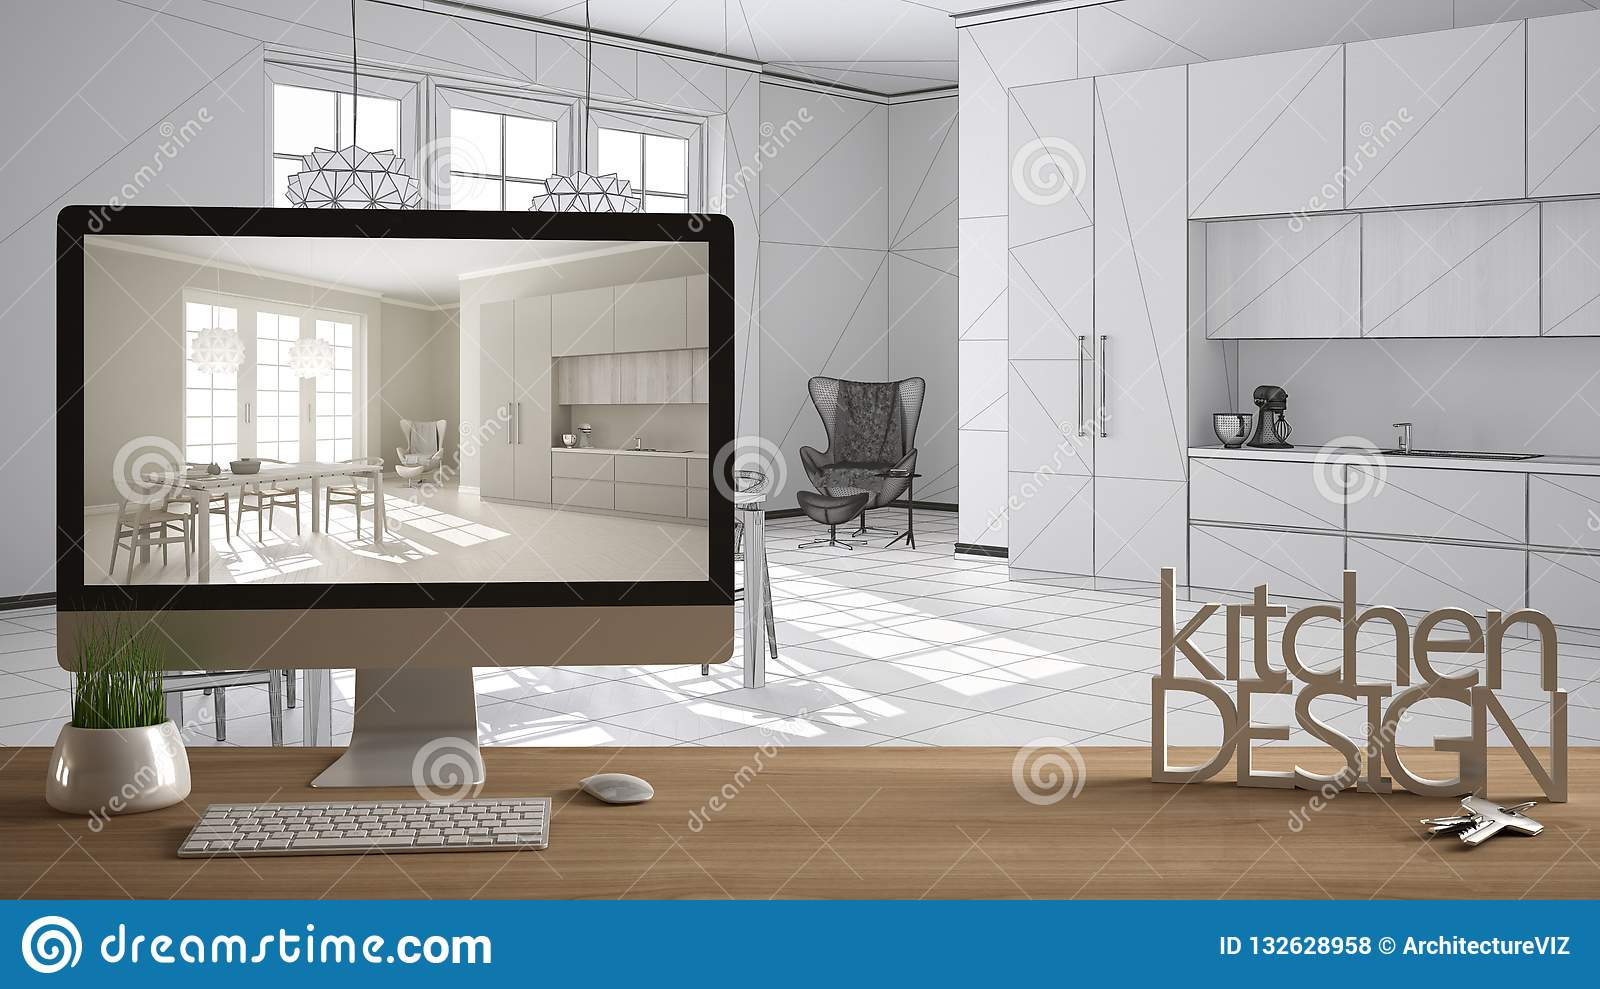 Architect designer project concept, wooden table with house keys, 3D letters words kitchen design and desktop showing draft, bluep